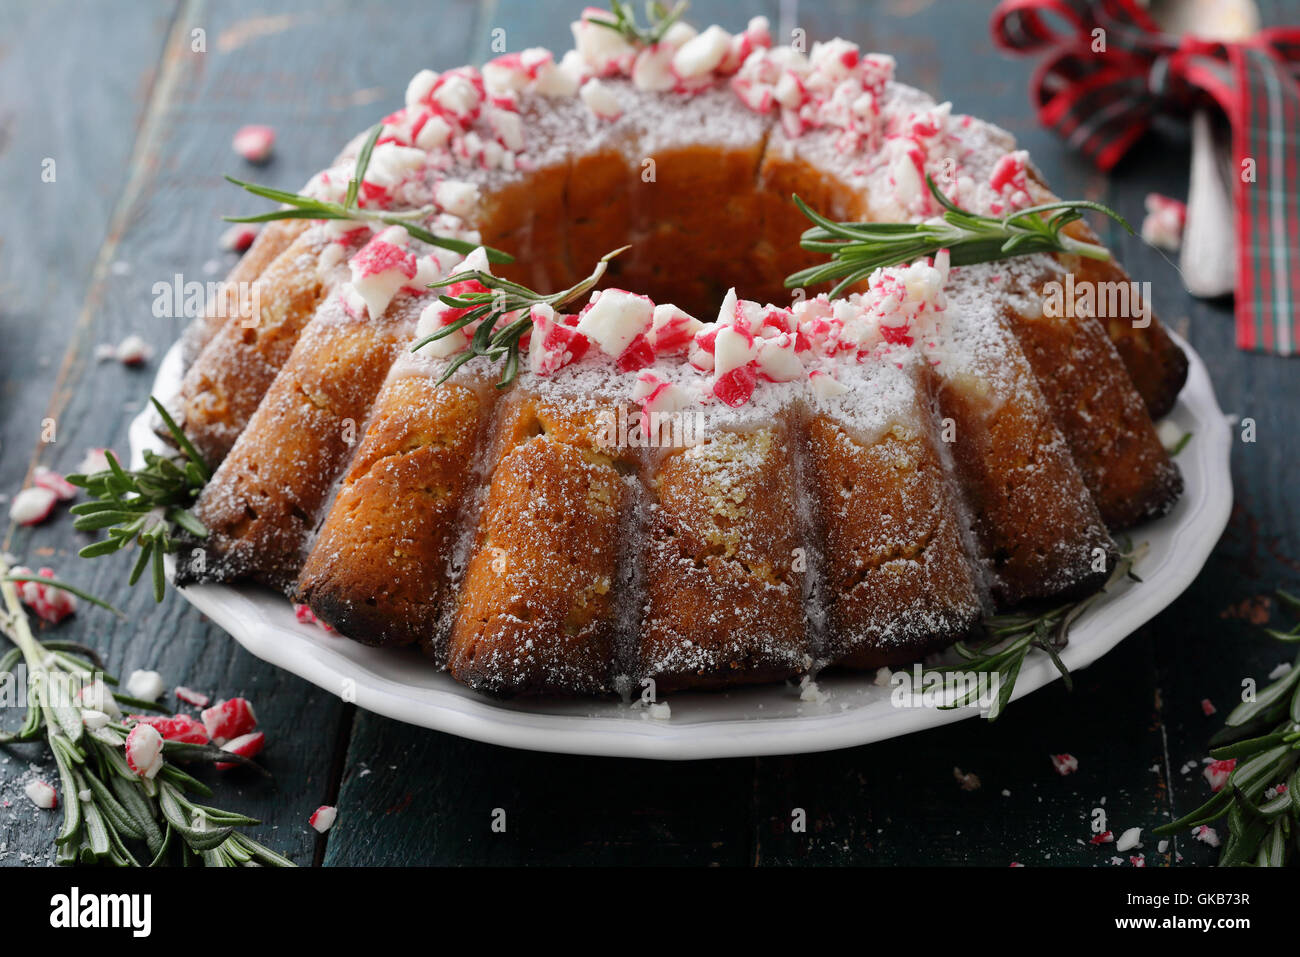 Round christmas cake with icing, food close-up - Stock Image